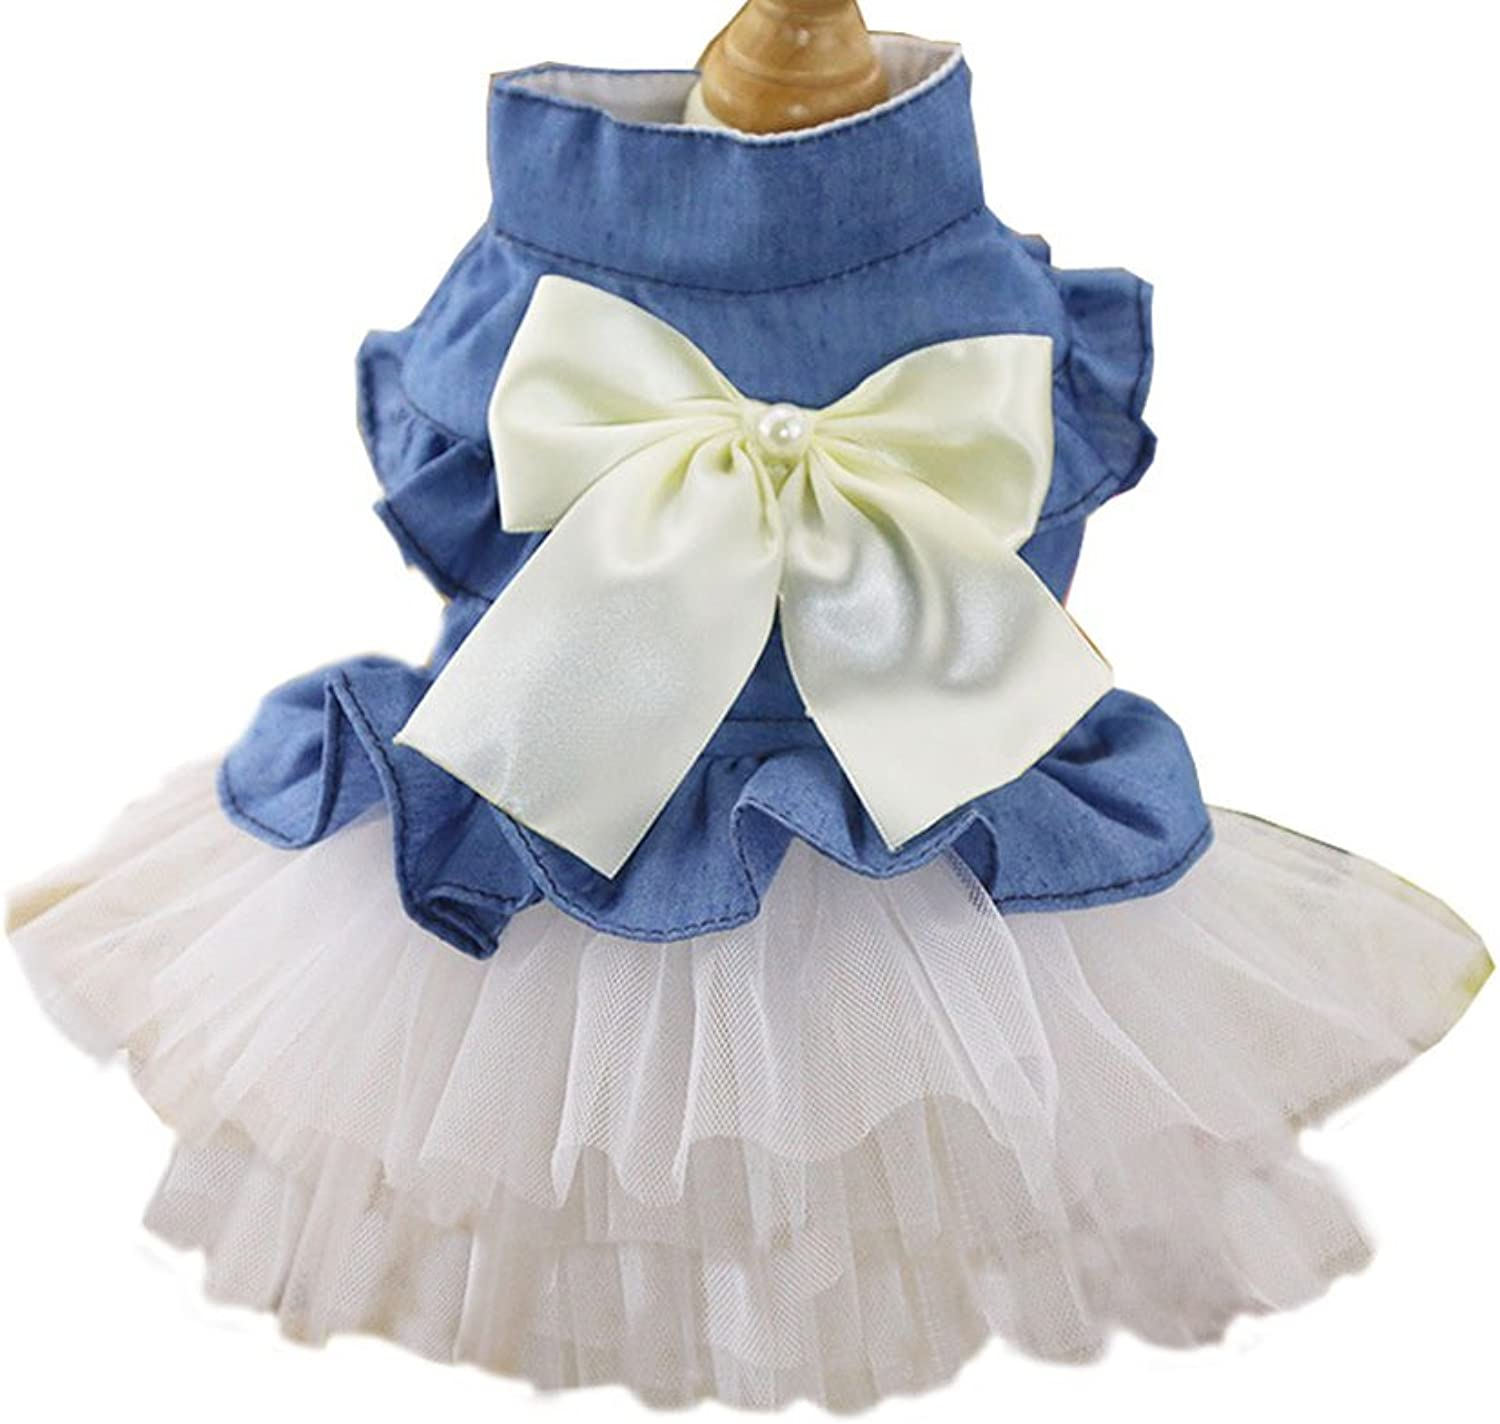 BBEART Pet Clothes, Sweet Bowknot Small Dog Skirt Girl Tutu Clothing Puppy Cat Sleeveless Apparel Teddy Clothes Harness Wedding Dresses for Spring and Summer (XS, White)